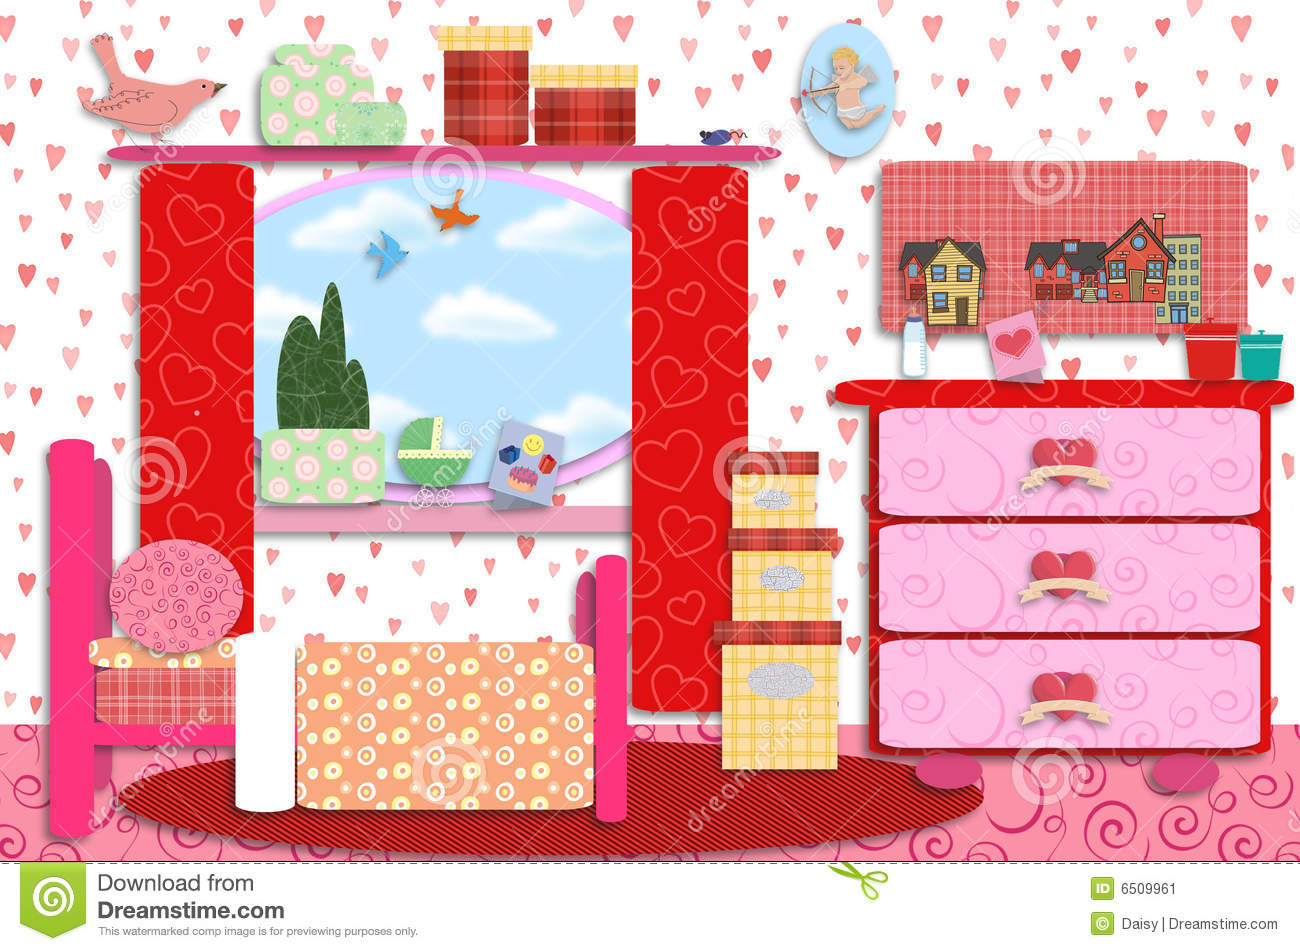 Sweet Baby Girl Wallpaper Free Download Retro Girls Baby Room Stock Image Image 6509961